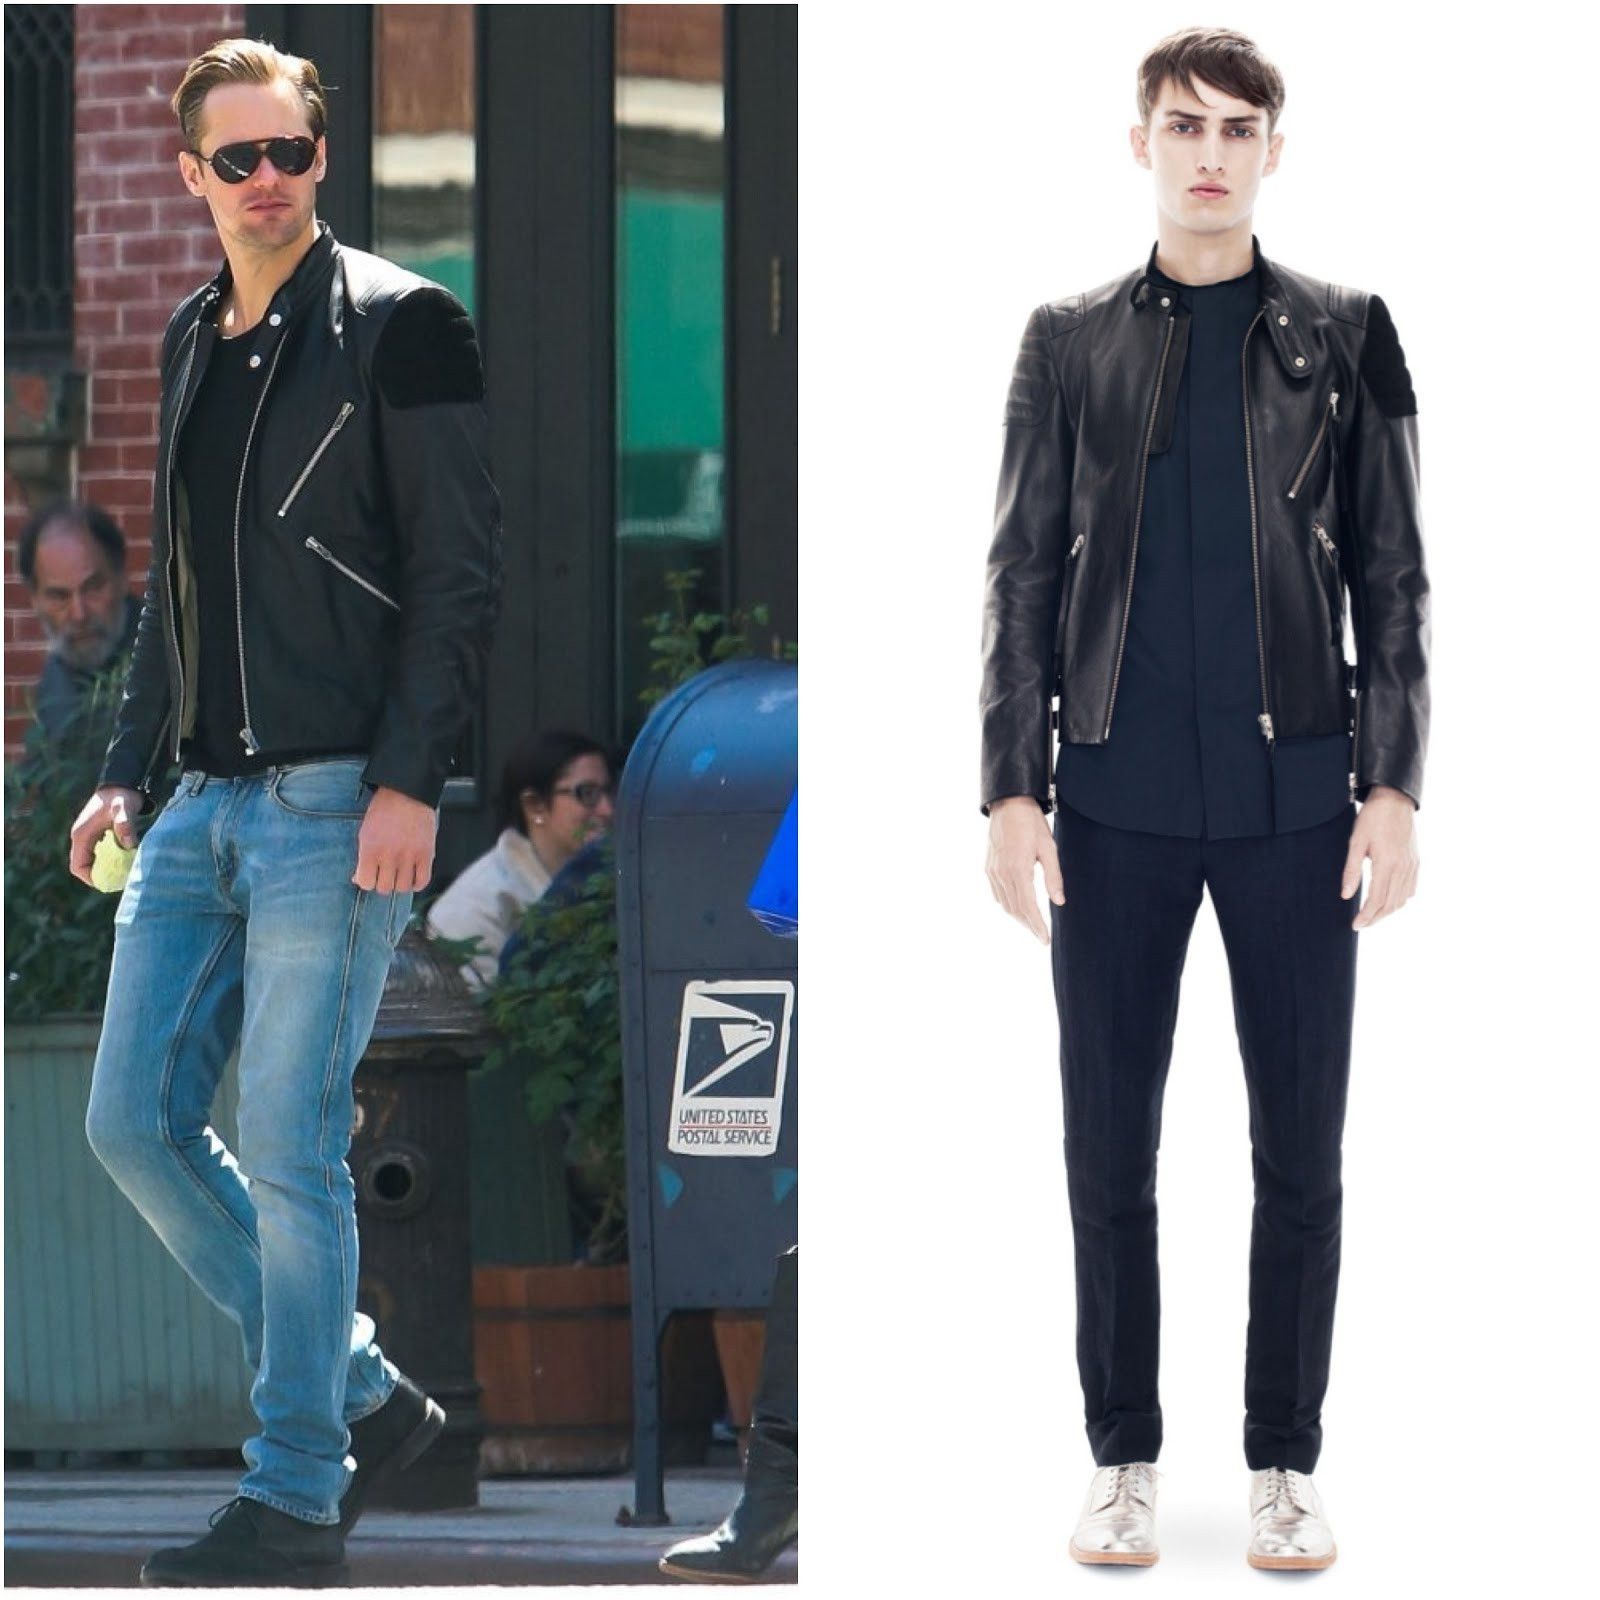 00O00 Menswear Blog: Alexander Skarsgard in Acne Studios 'Oliver' leather and suede biker jacket - New York Street Style May 2013